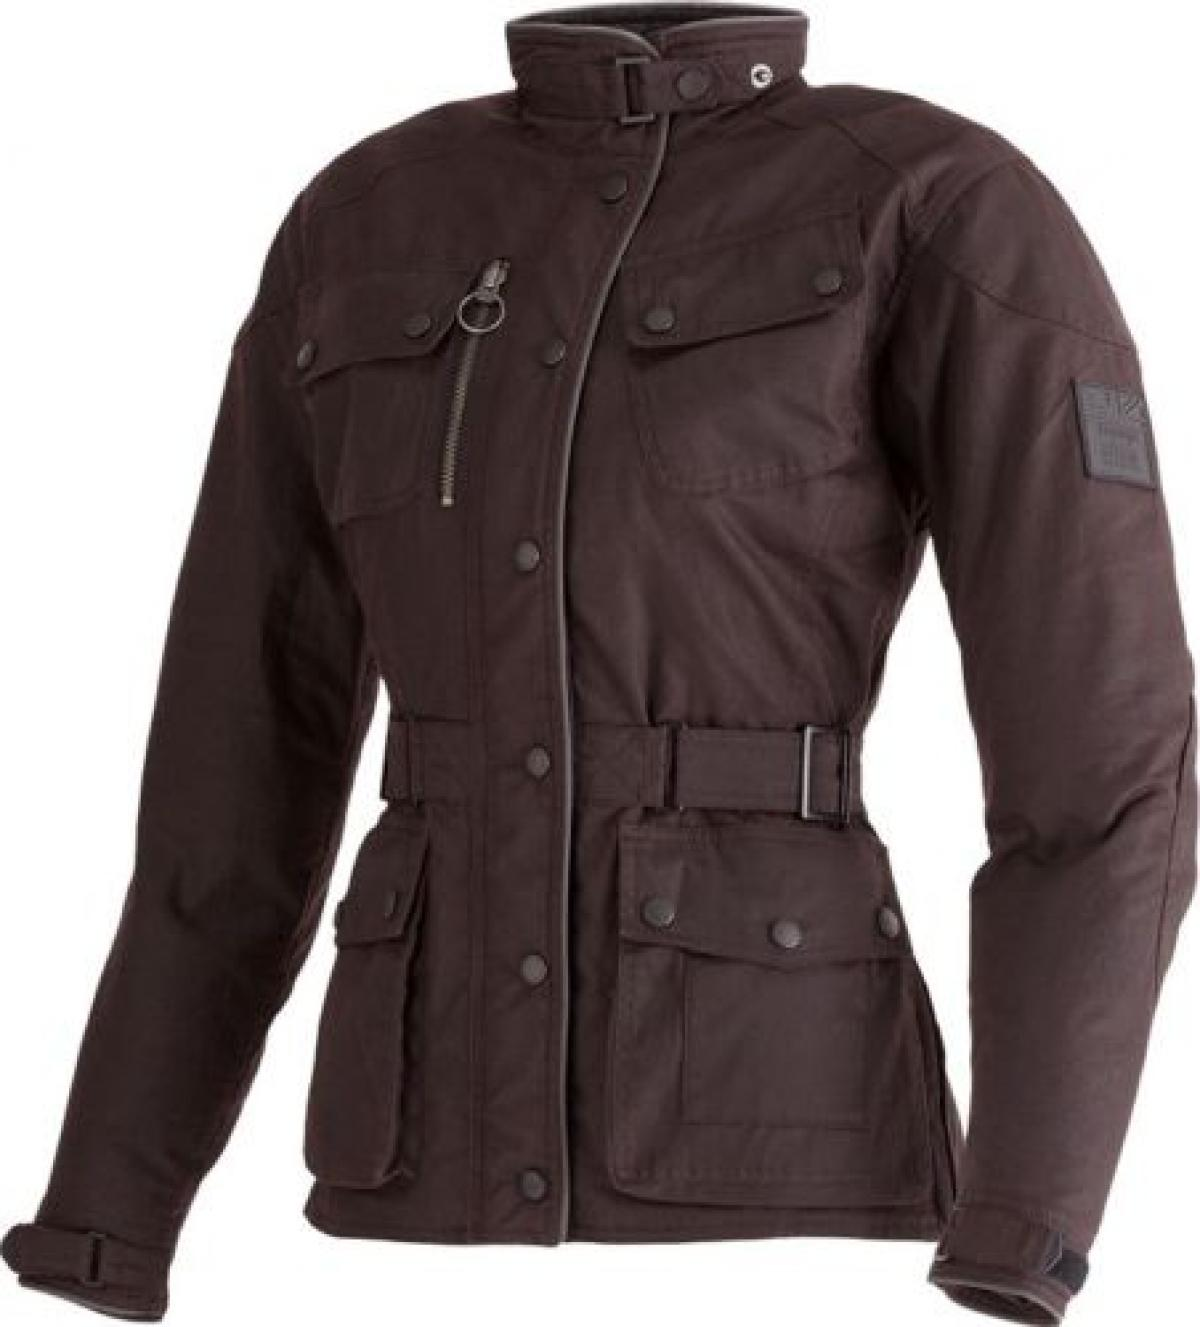 451b72ce661 Details about Triumph Barbour Lady Oxblood Waxed Cotton Motorcycle Jacket  D30 Armour